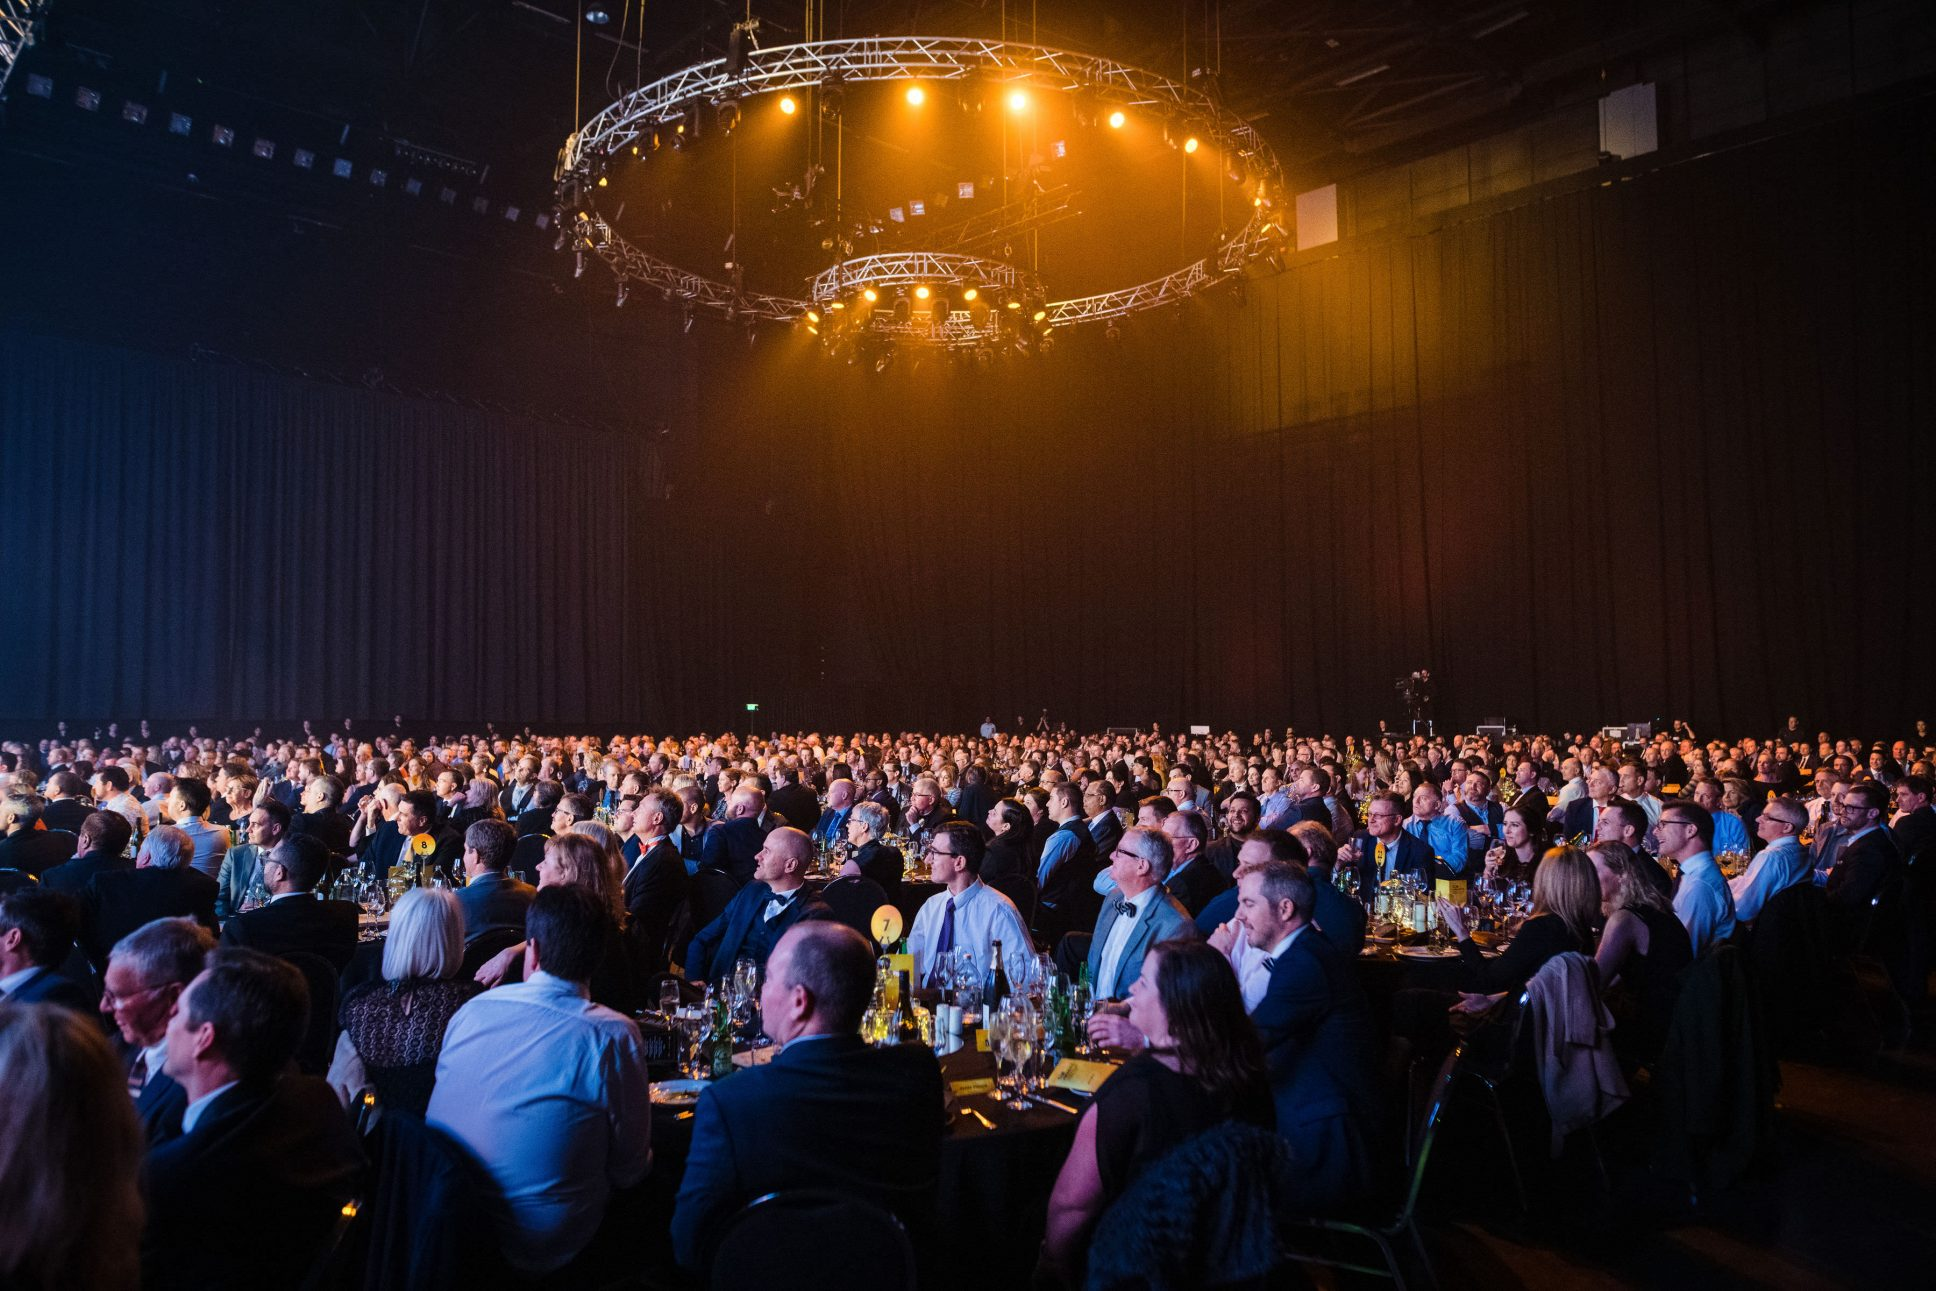 Gala dinner event at Auckland waterfront venue Spark Arena.